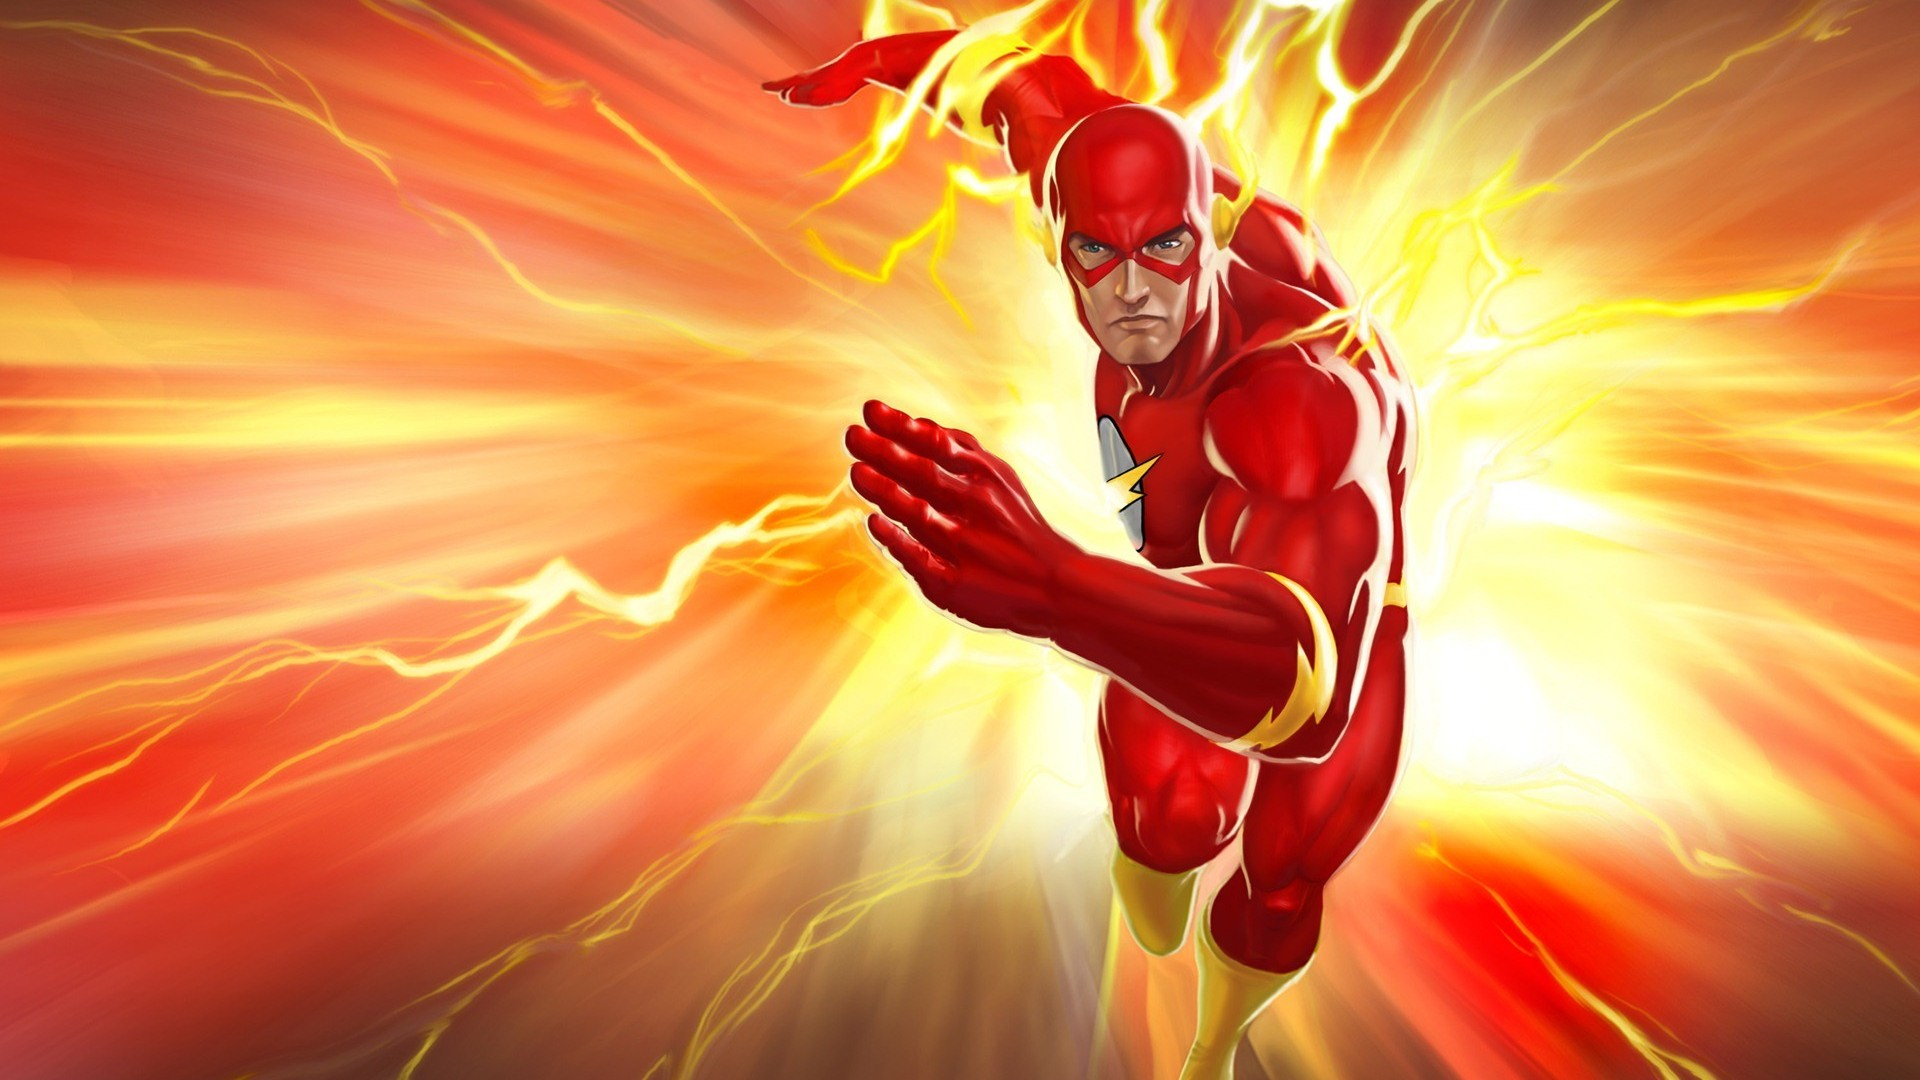 The Flash Wallpaper HD - WallpaperSafari